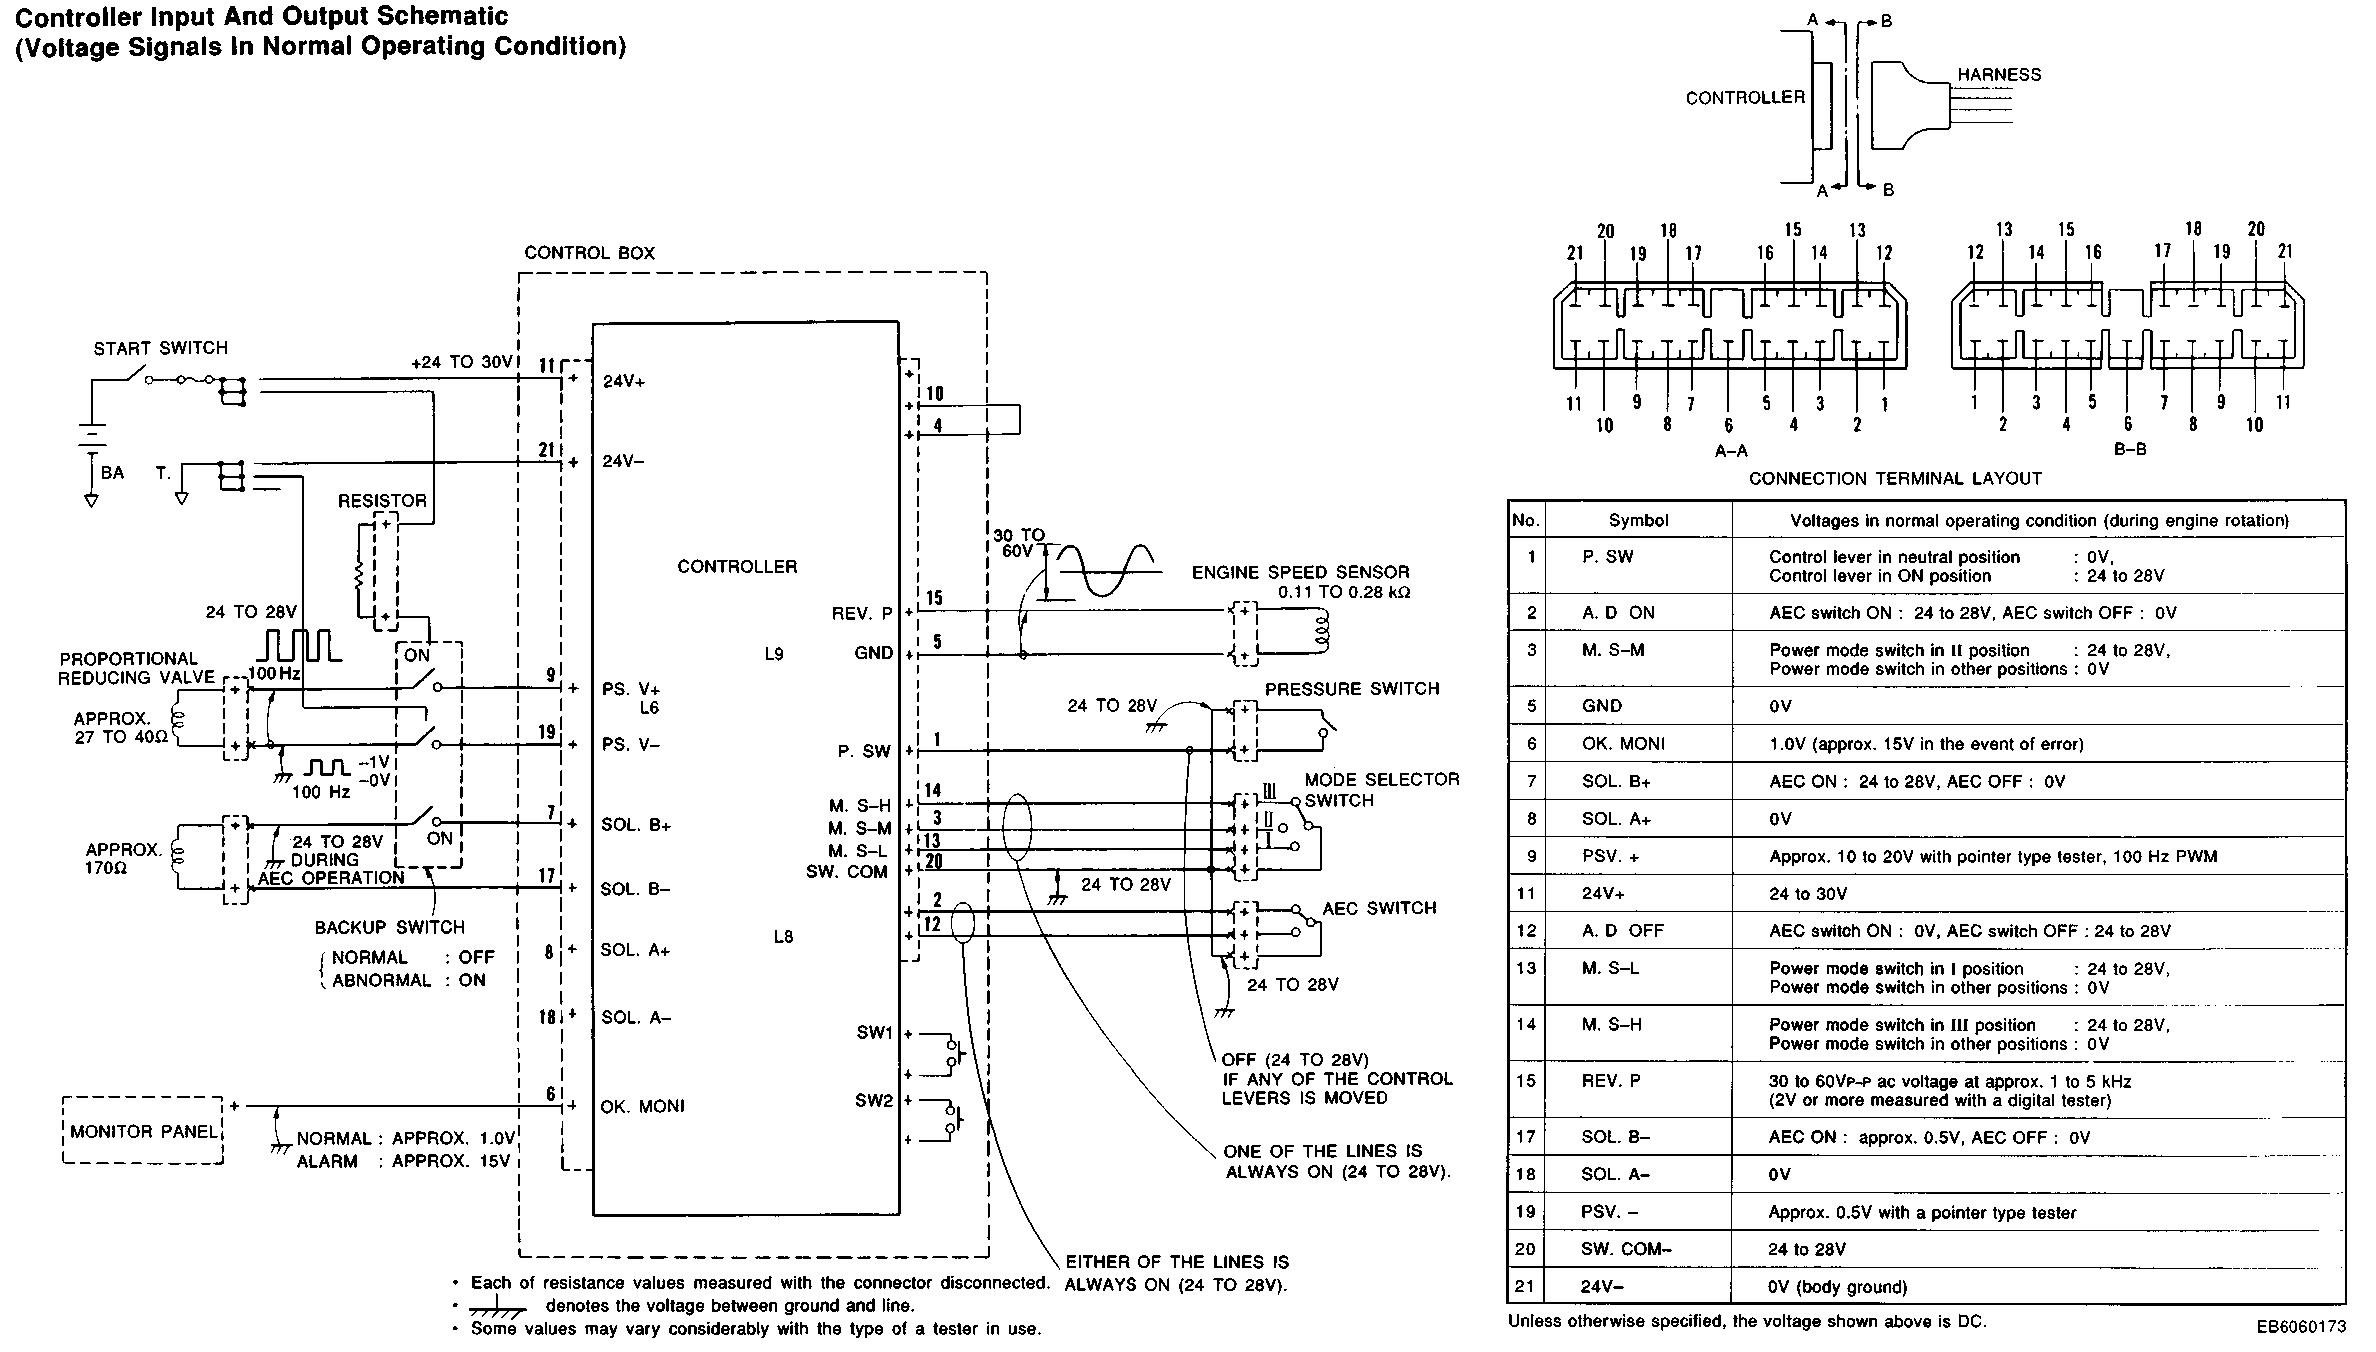 free download guitar wiring schematics do you have an electrical diagram or schematic for a ...